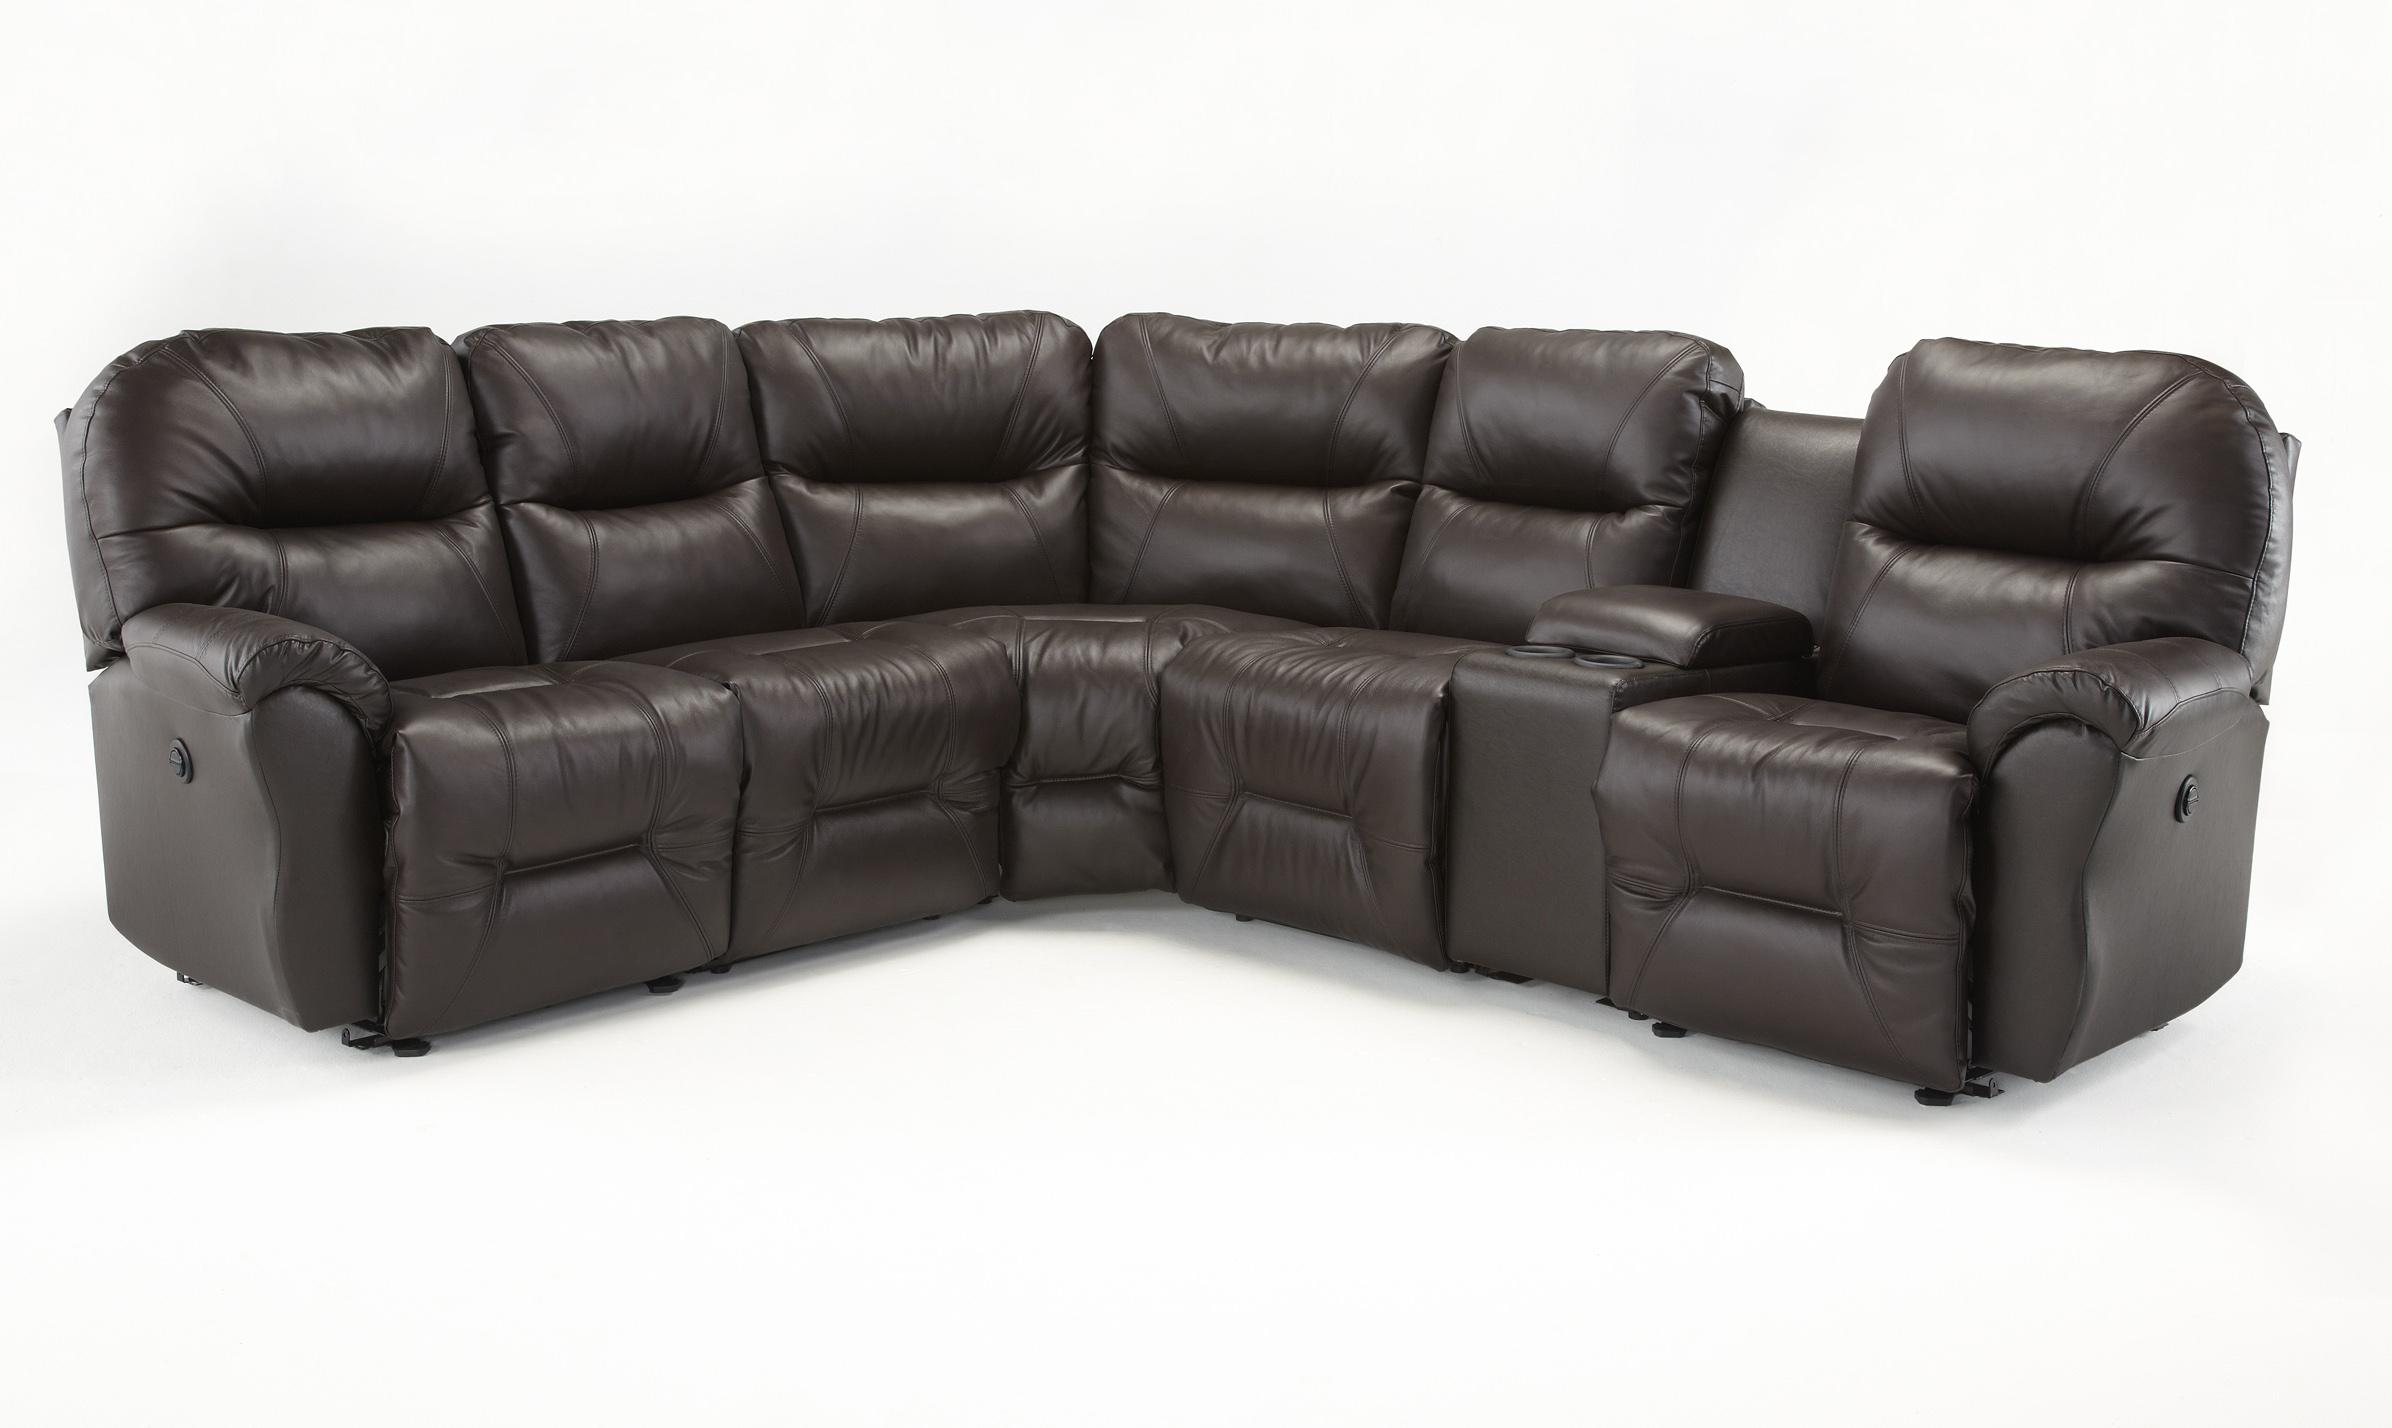 Bodie 6 Pc Reclining Sectional Sofa by Best Home Furnishings at Saugerties Furniture Mart